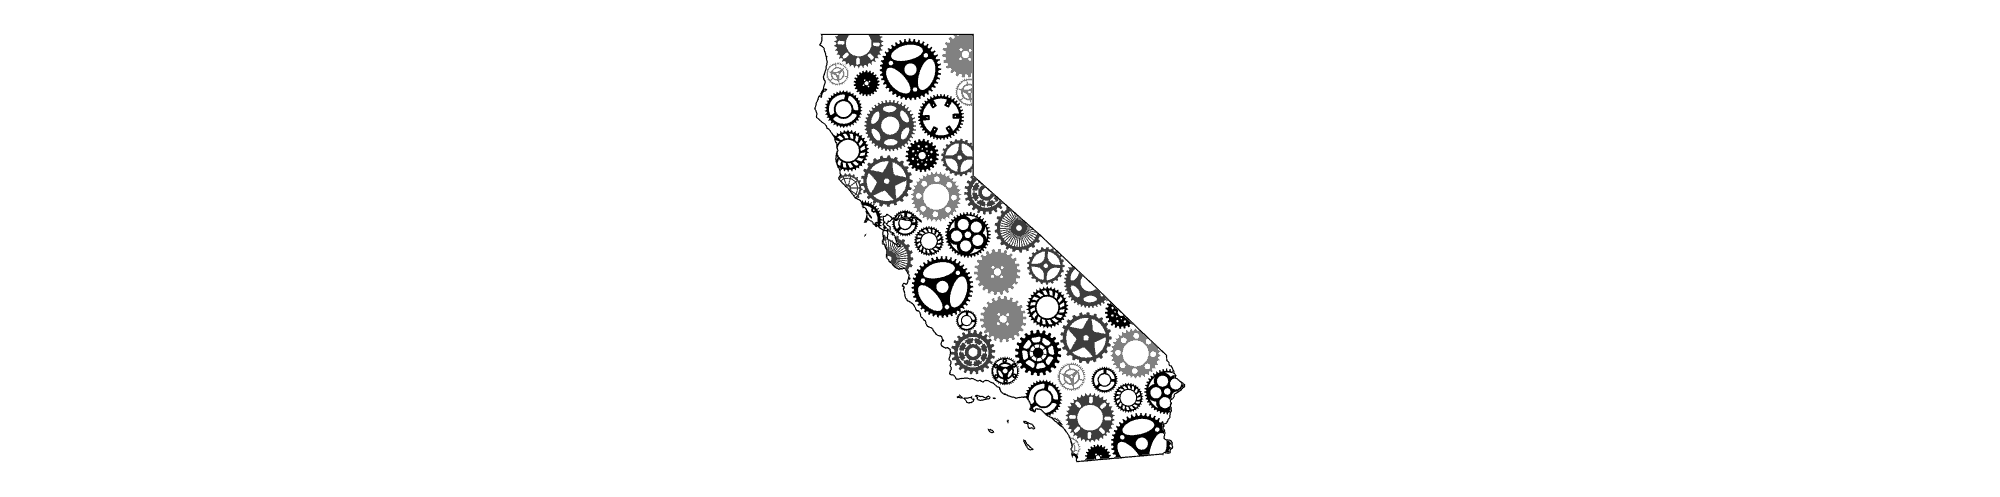 Map of California with interconnected gears in black and white on a simple background to show Clean-Vehicle adoption as a part of the green economy.